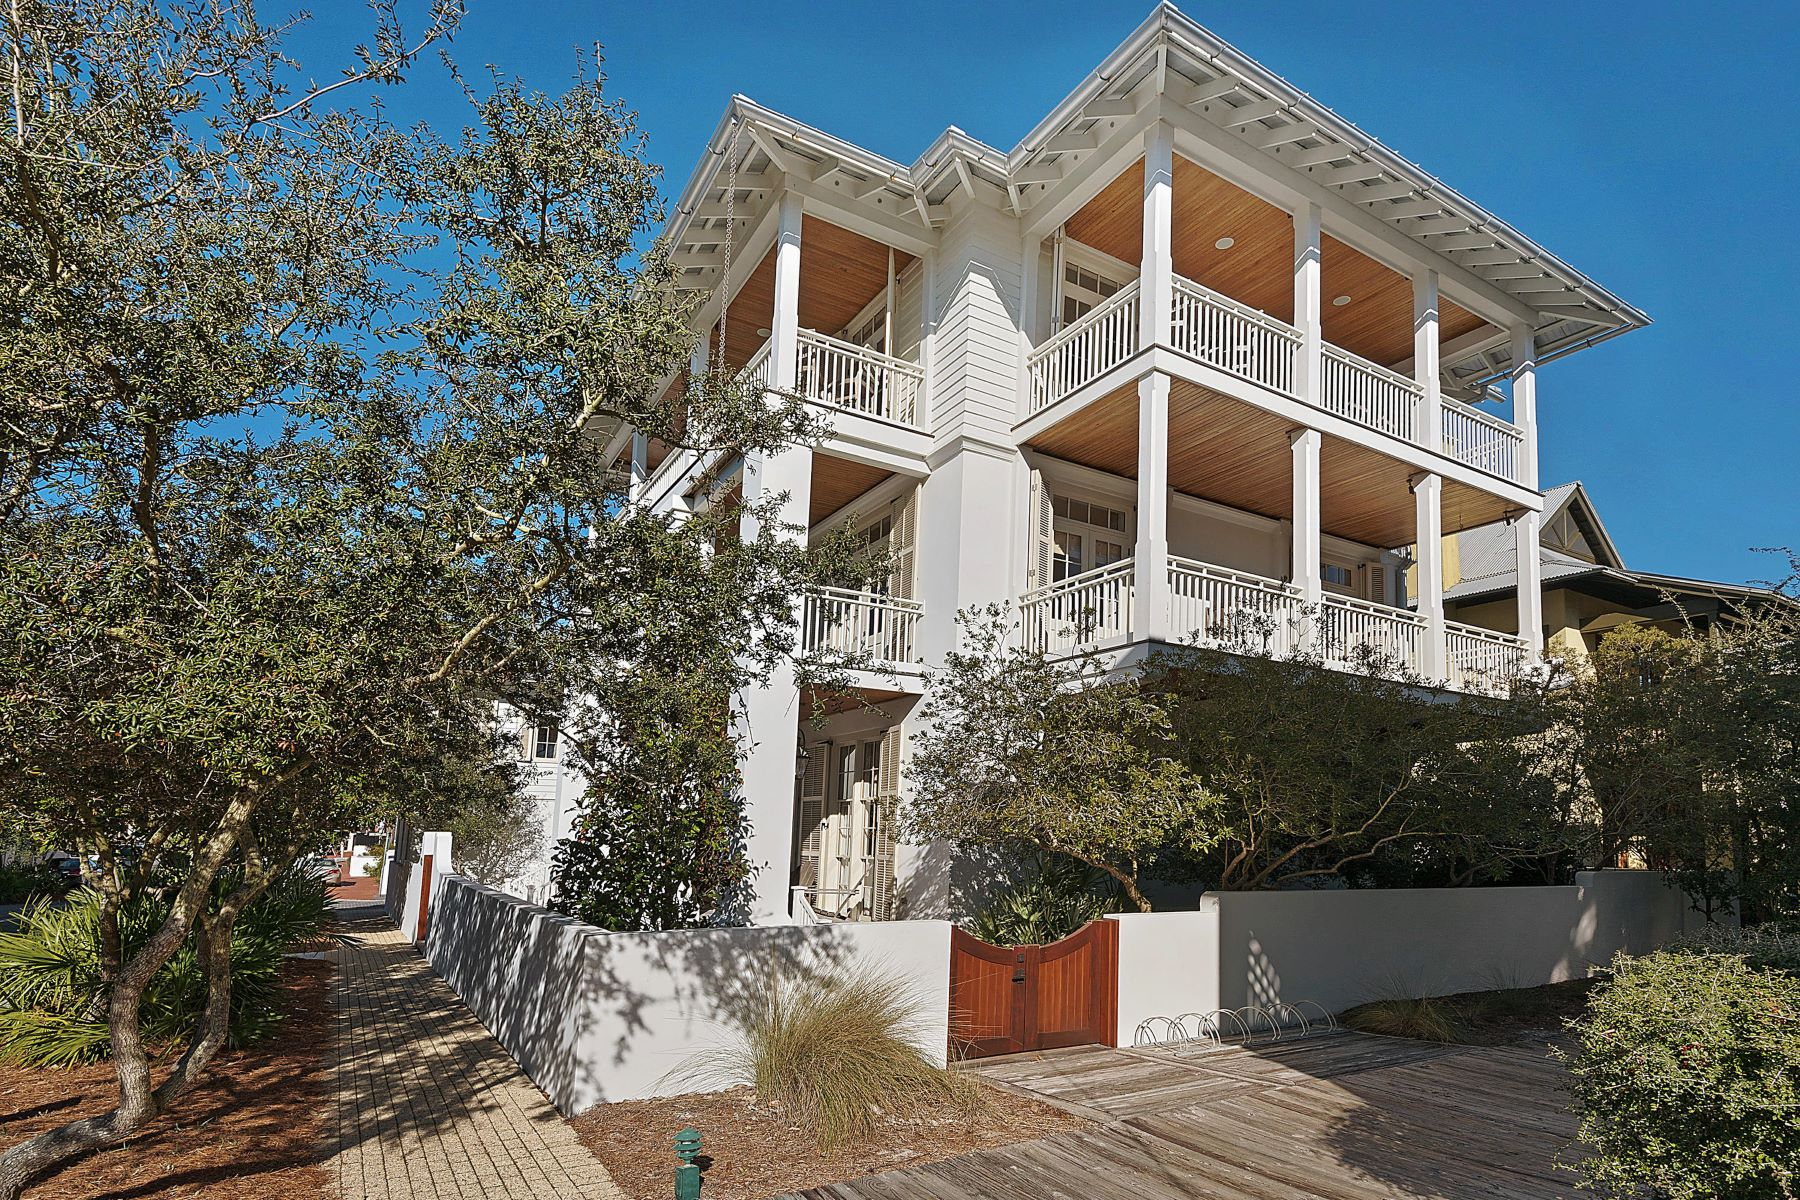 一戸建て のために 売買 アット ROSEMARY BEACH RECENTLY RENOVATED GULF VIEW 456 East Water Street Rosemary Beach, Rosemary Beach, フロリダ, 32461 アメリカ合衆国